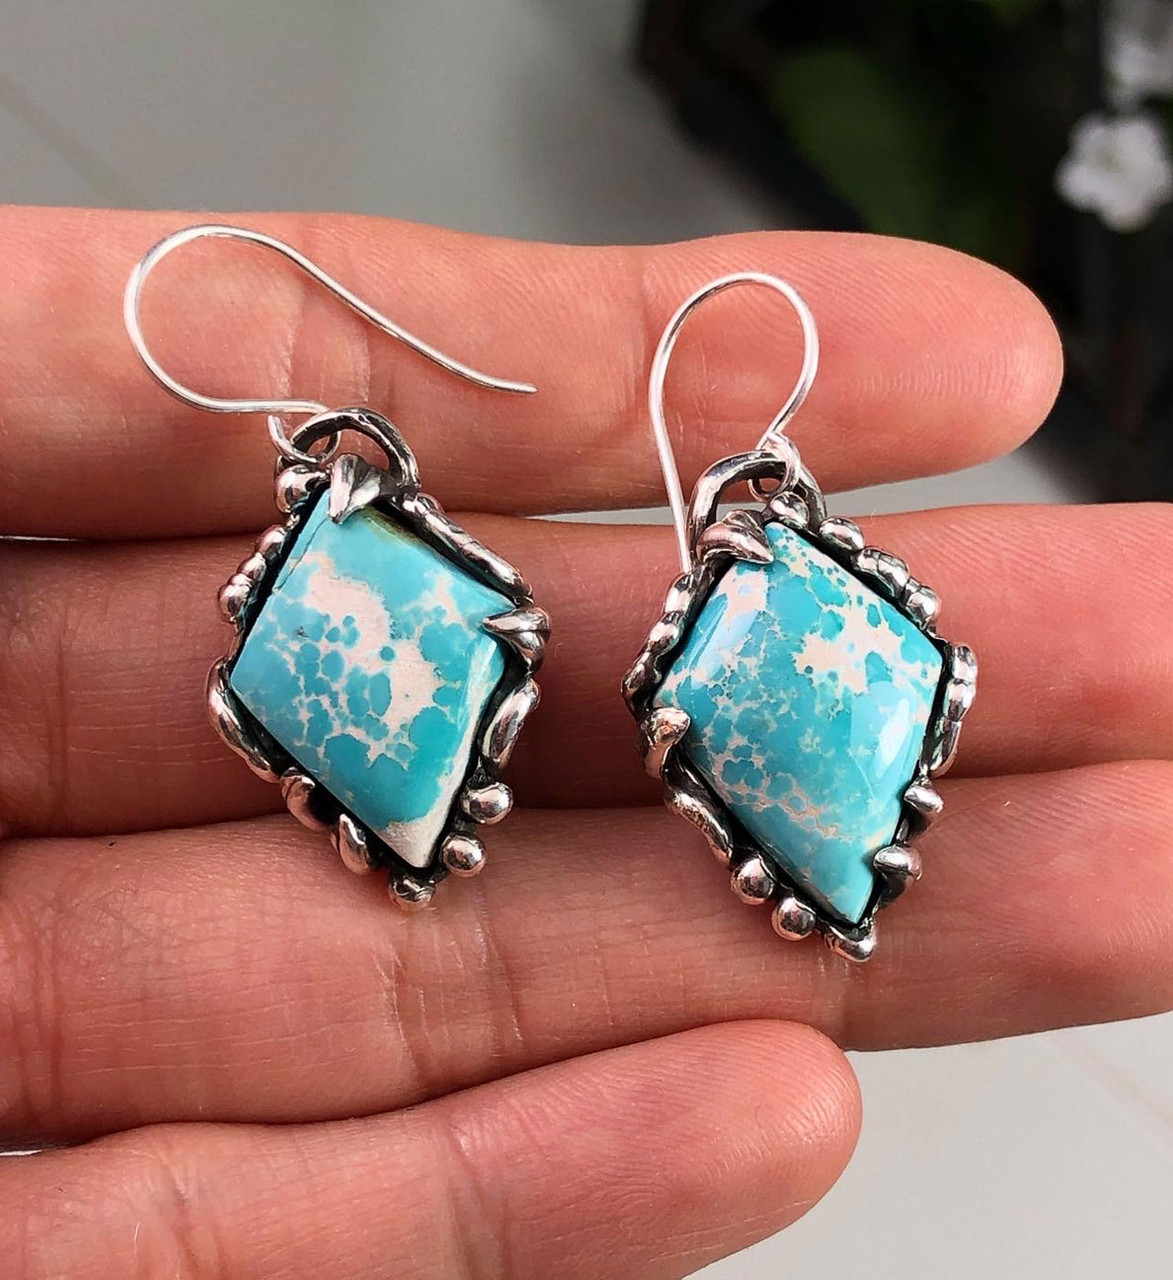 Natural Turquoise From Royston Nevada Cabochon Cab Pair Drilled Matched Earrings Bead Pair E1501